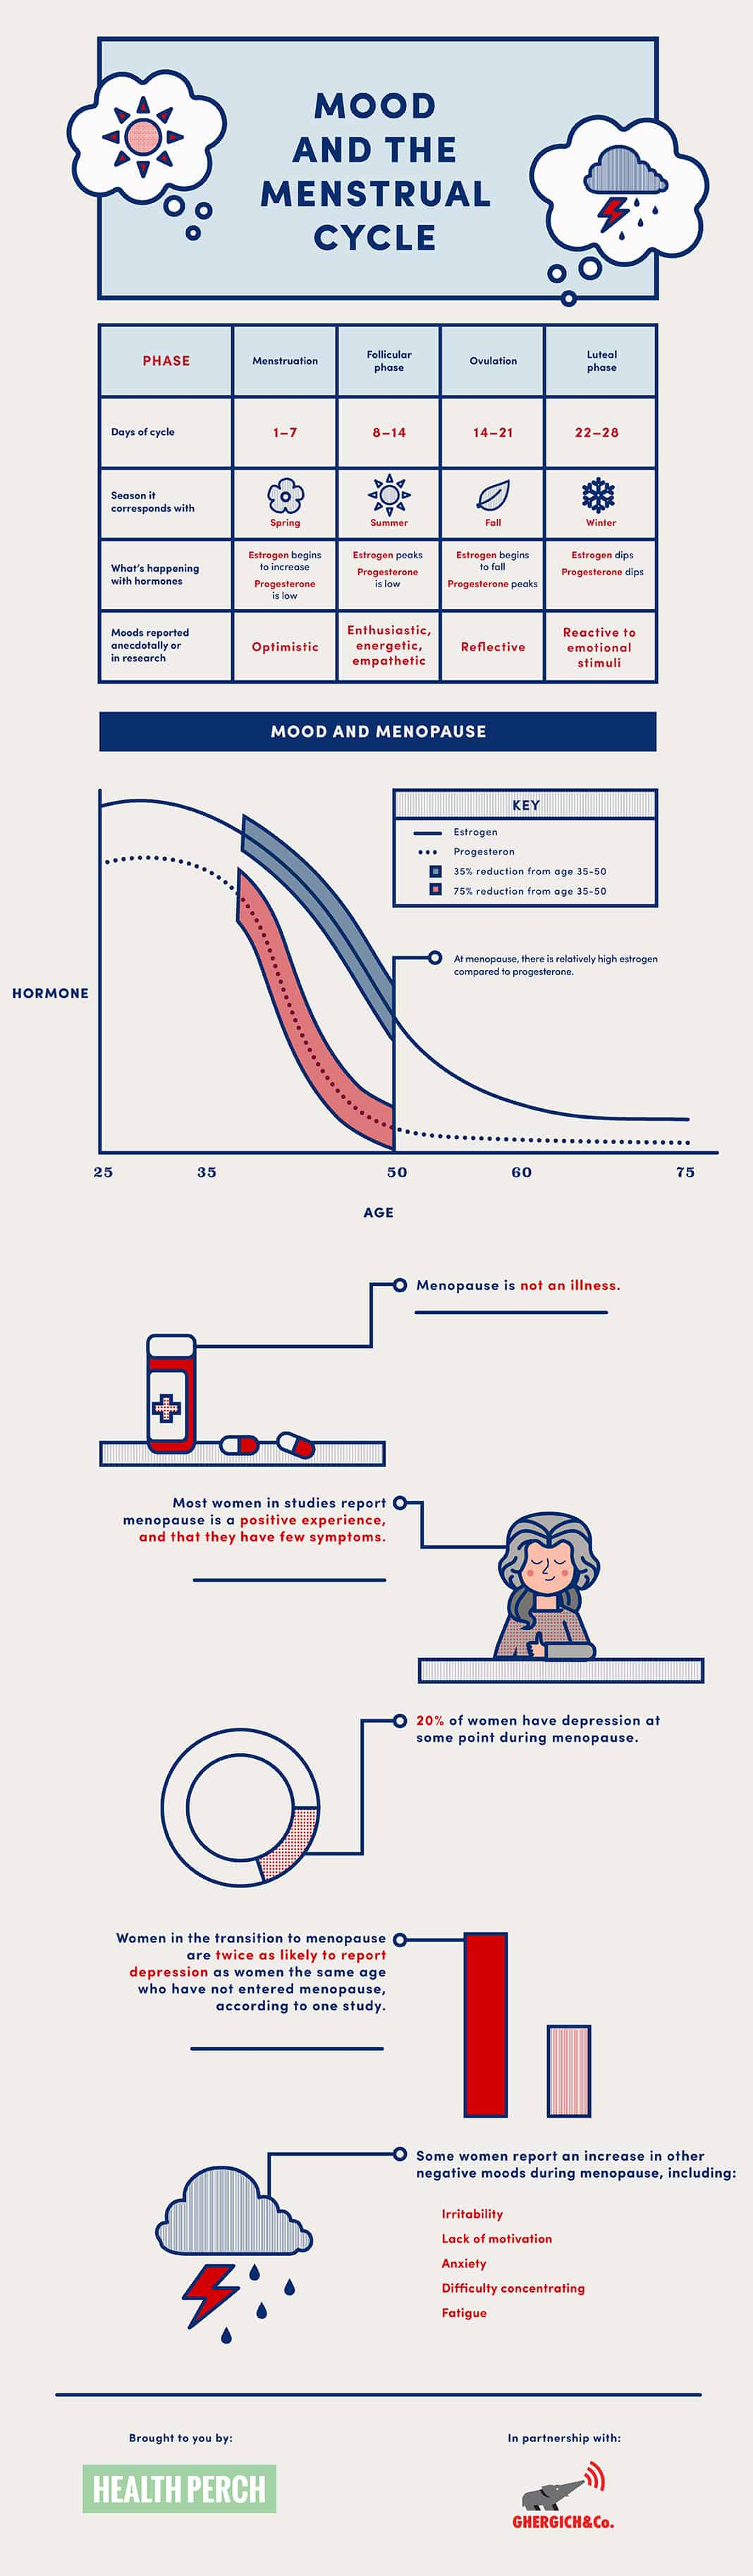 Mood and the Menstrual Cycle [Infographic]   ecogreenlove